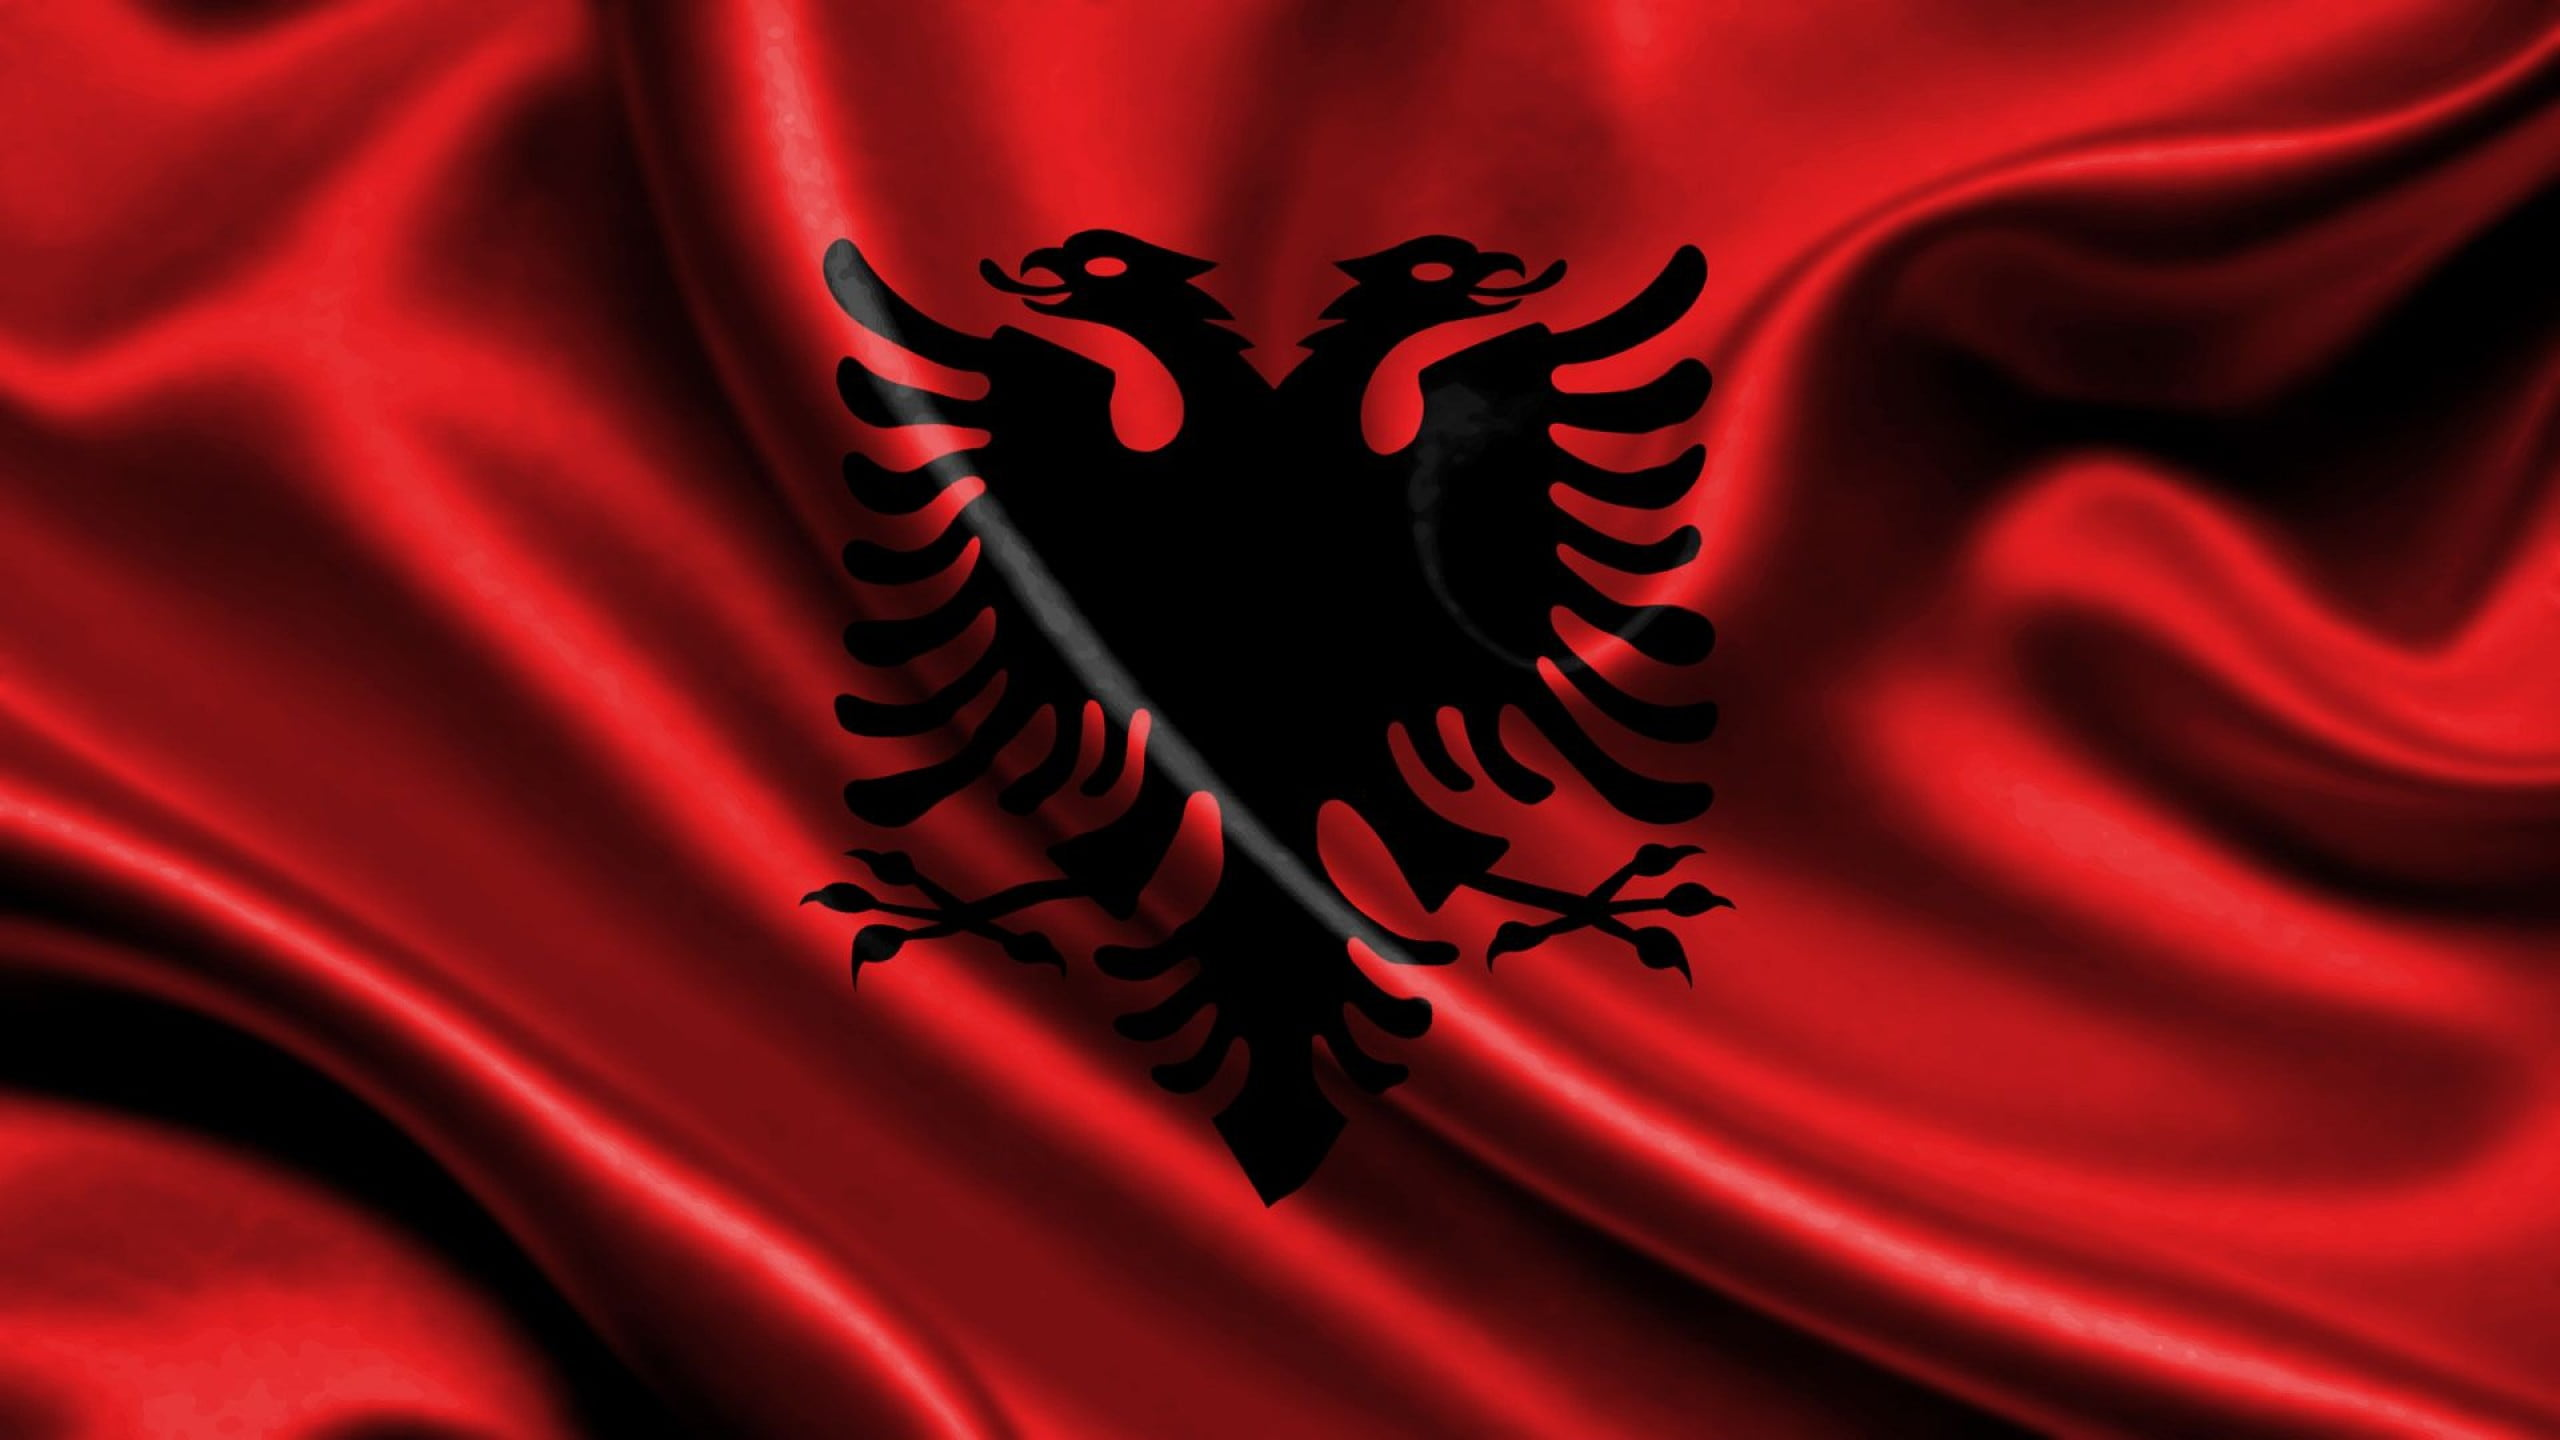 hd-albanian-eagle-wallpaper-dowload